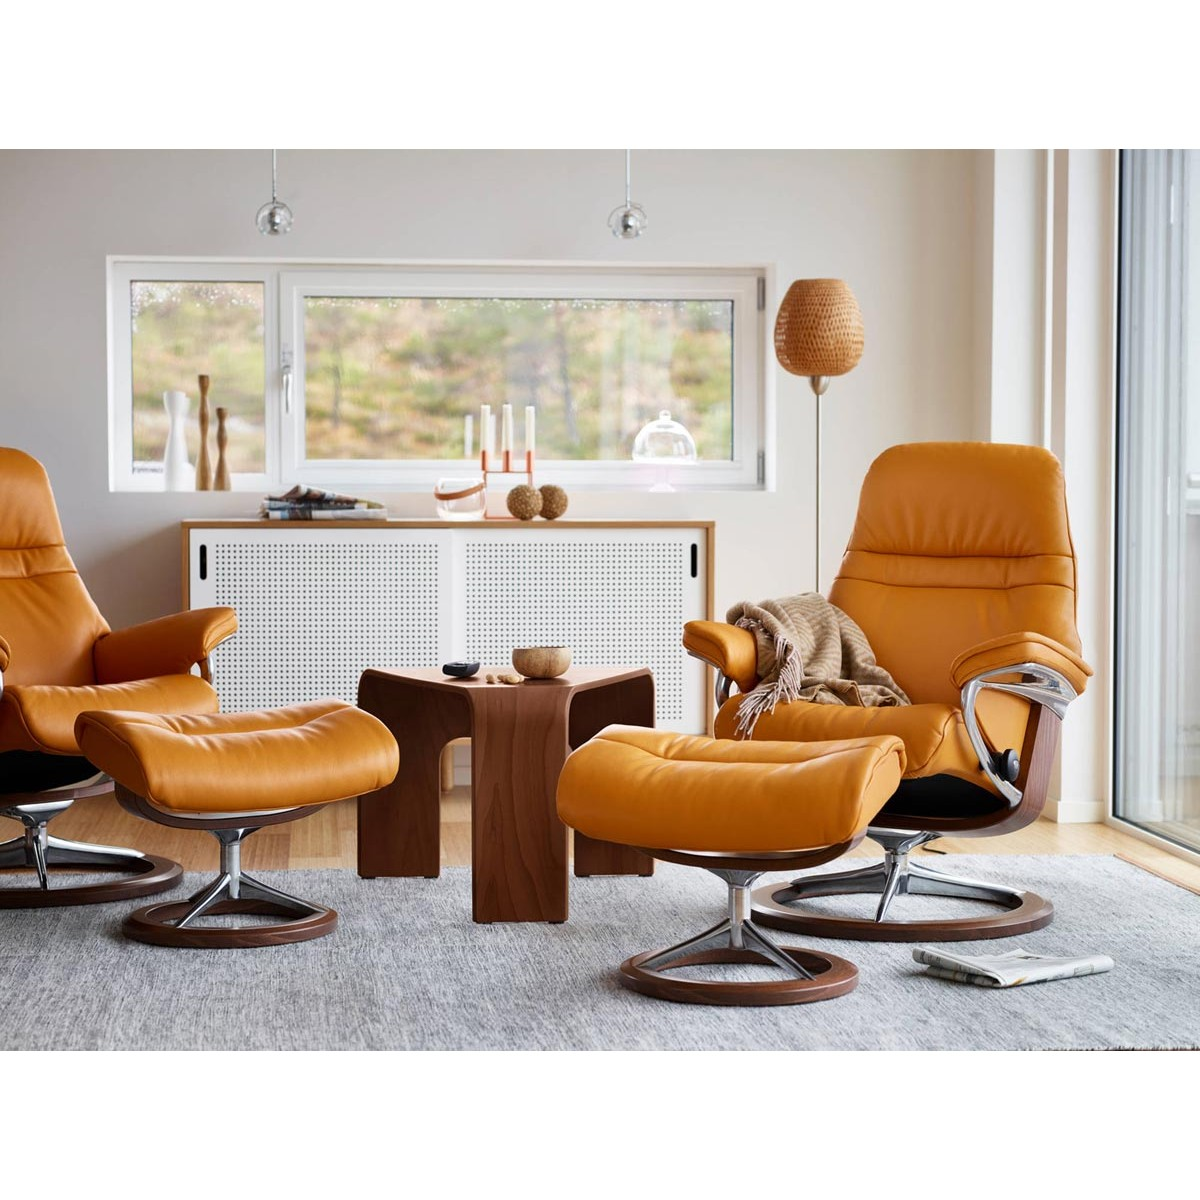 Stressless Sunrise Signature Recliner & Ottoman from $2,000.00 by ...